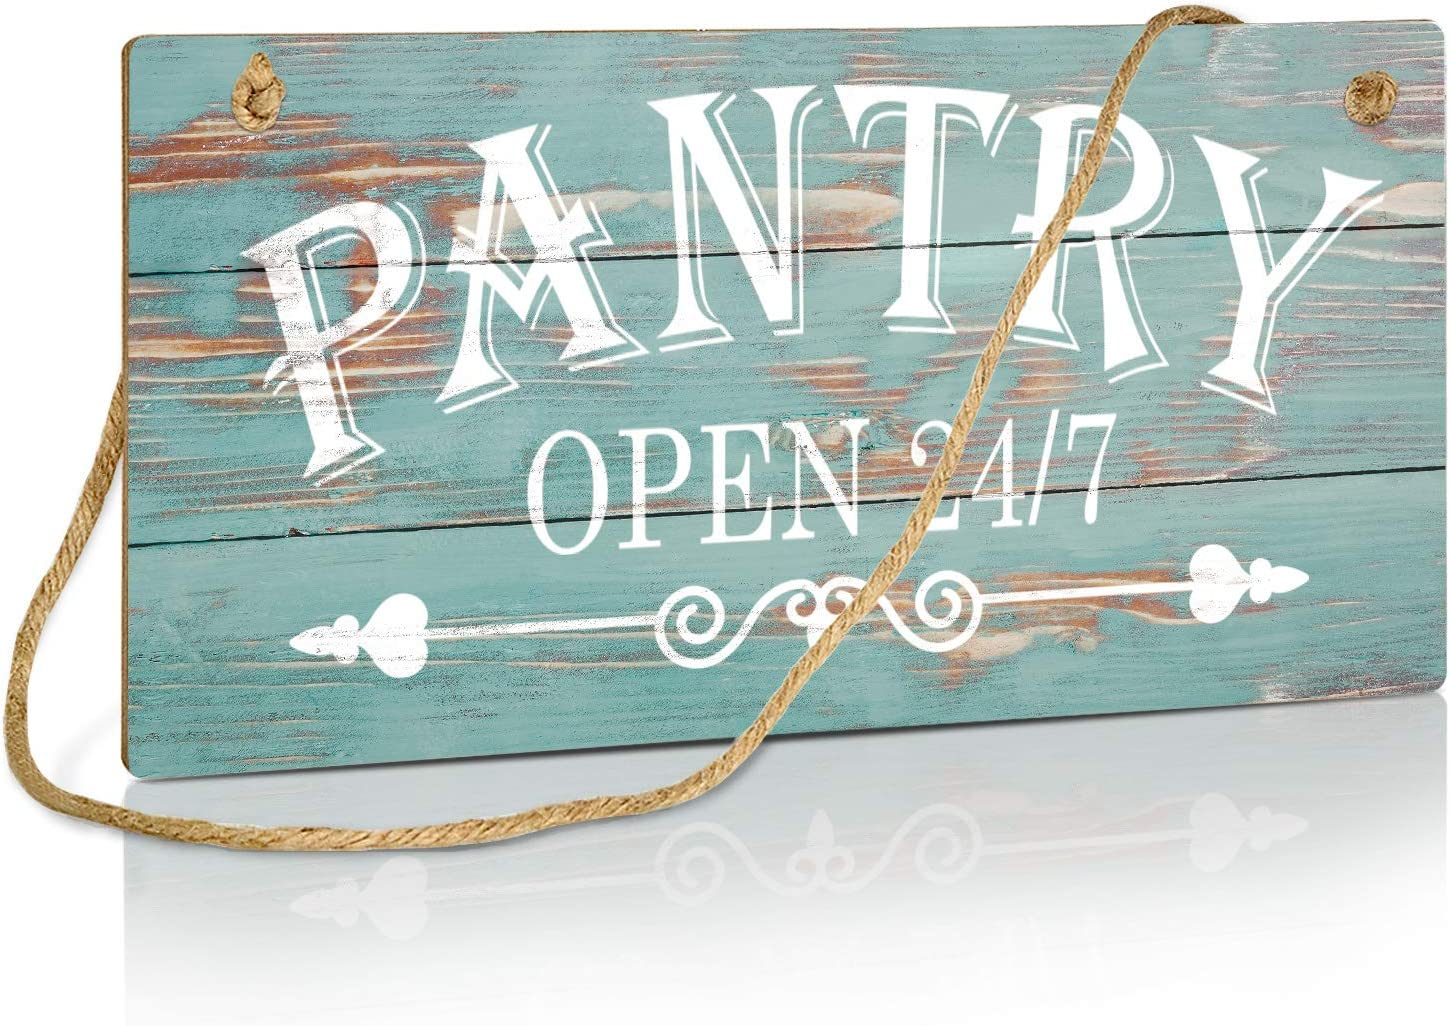 Putuo Decor Blue Pantry Sign, Farmhouse Kitchen Wall Sign for Home, Restaurant, laundry, Coffee Shop, 10x5 Inches Hanging Plaque Sign - Pantry Open 24/7